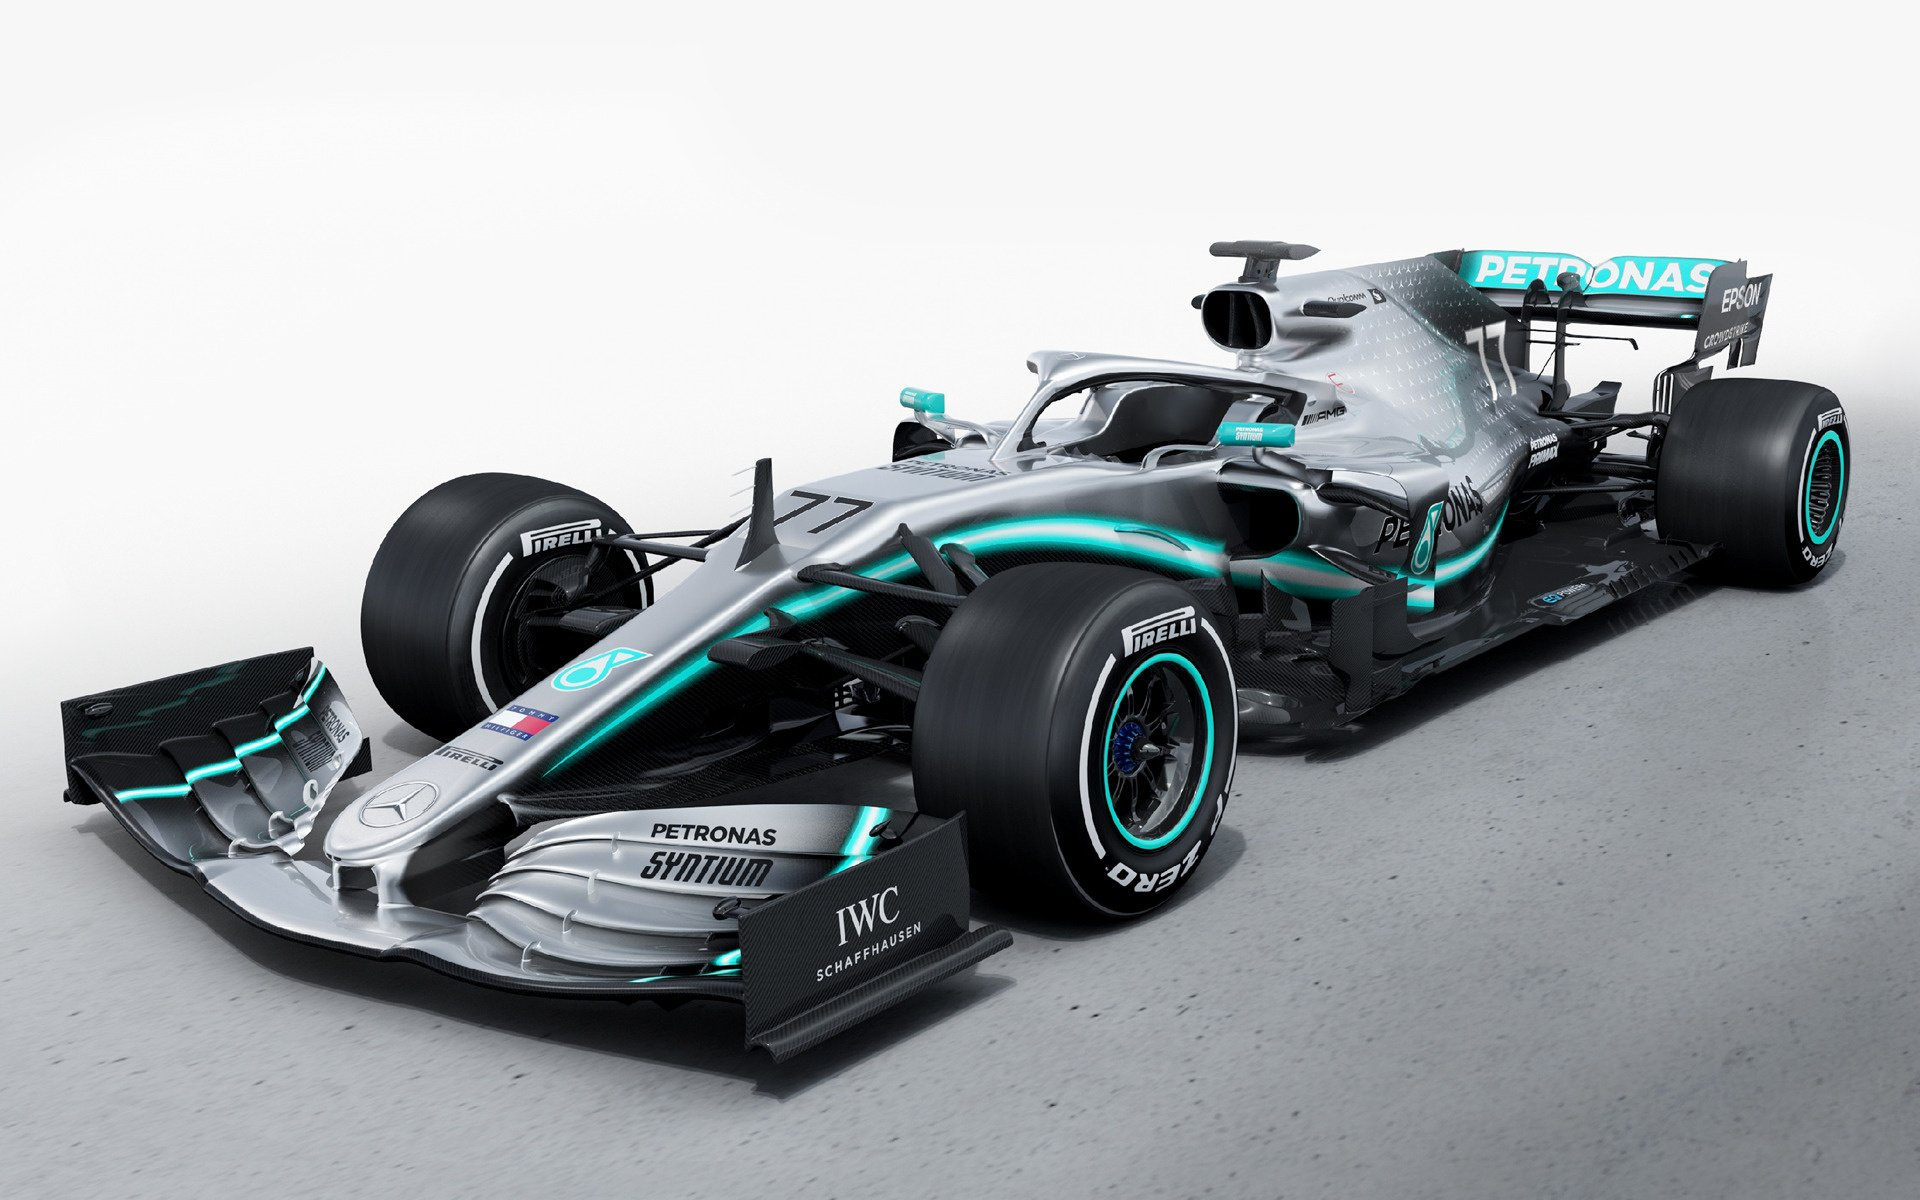 Free Download 2019 Mercedes Amg F1 W10 Eq Power Wallpapers And Hd Images 1920x1200 For Your Desktop Mobile Tablet Explore 15 F1 2019 Wallpapers F1 2019 Wallpapers Haas F1 2019 Wallpapers F1 2019 Videogame Wallpapers